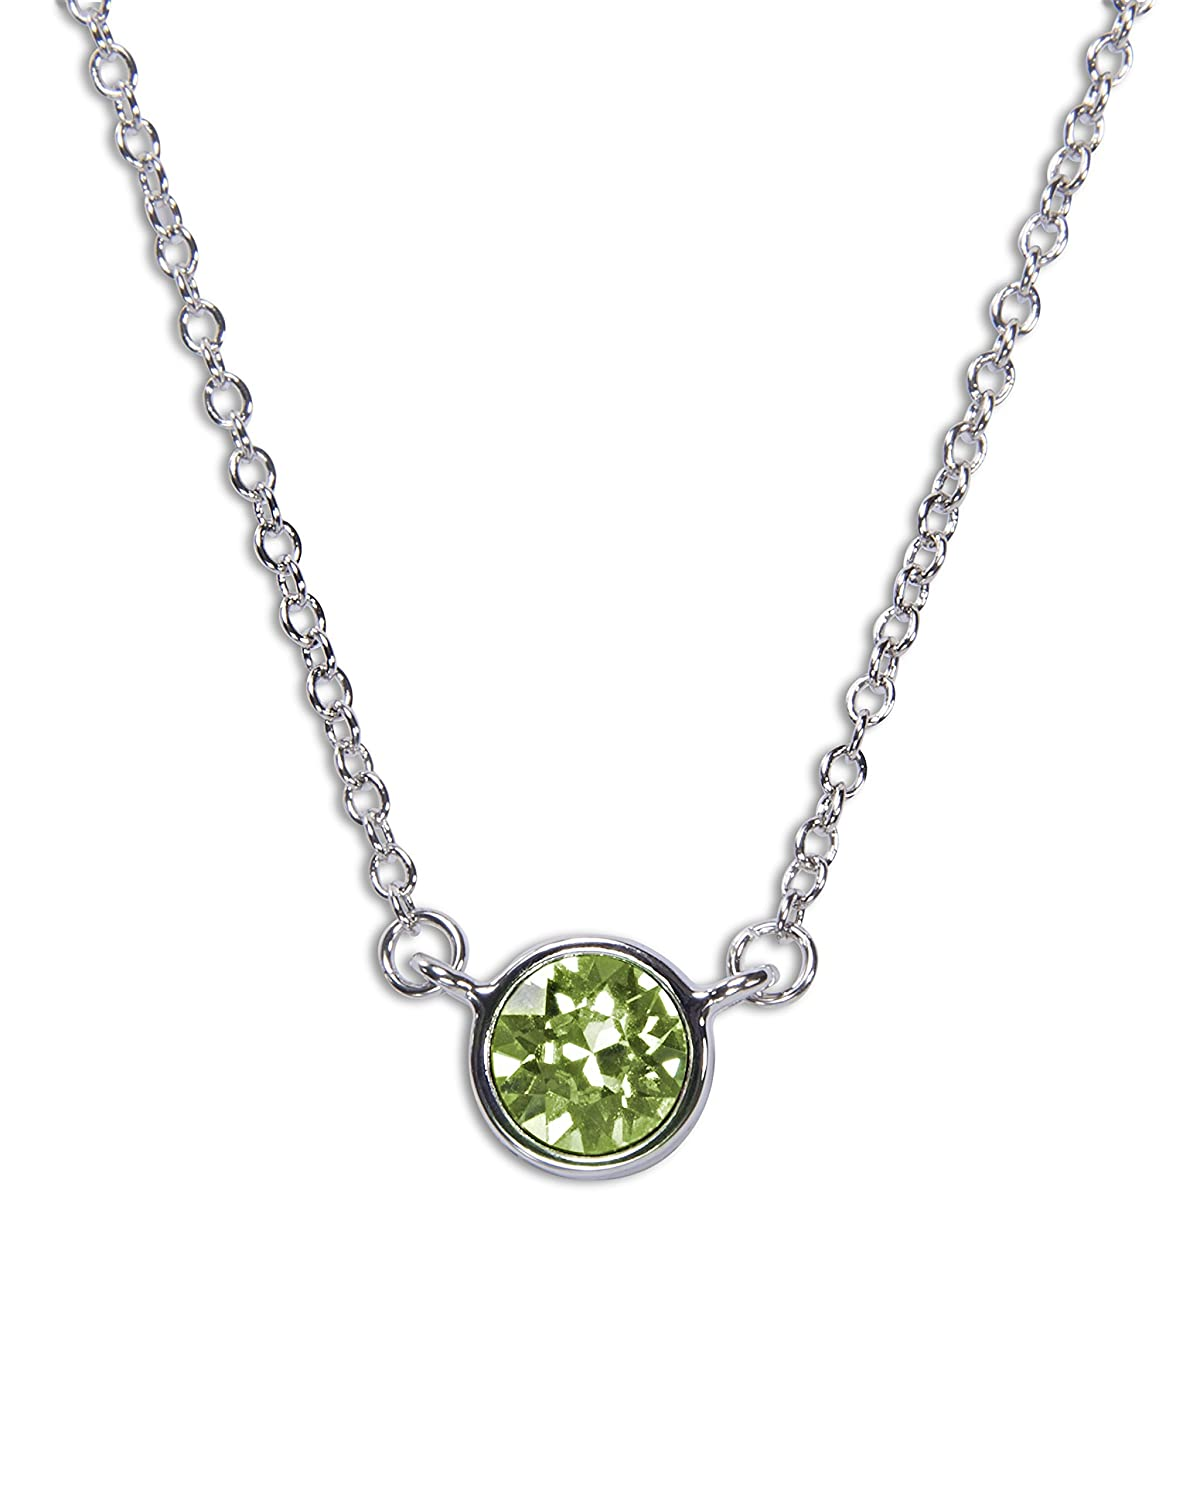 Pavilion Gift Company H2Z 16223 August Peridot Birthstone Necklace with 18 Chain